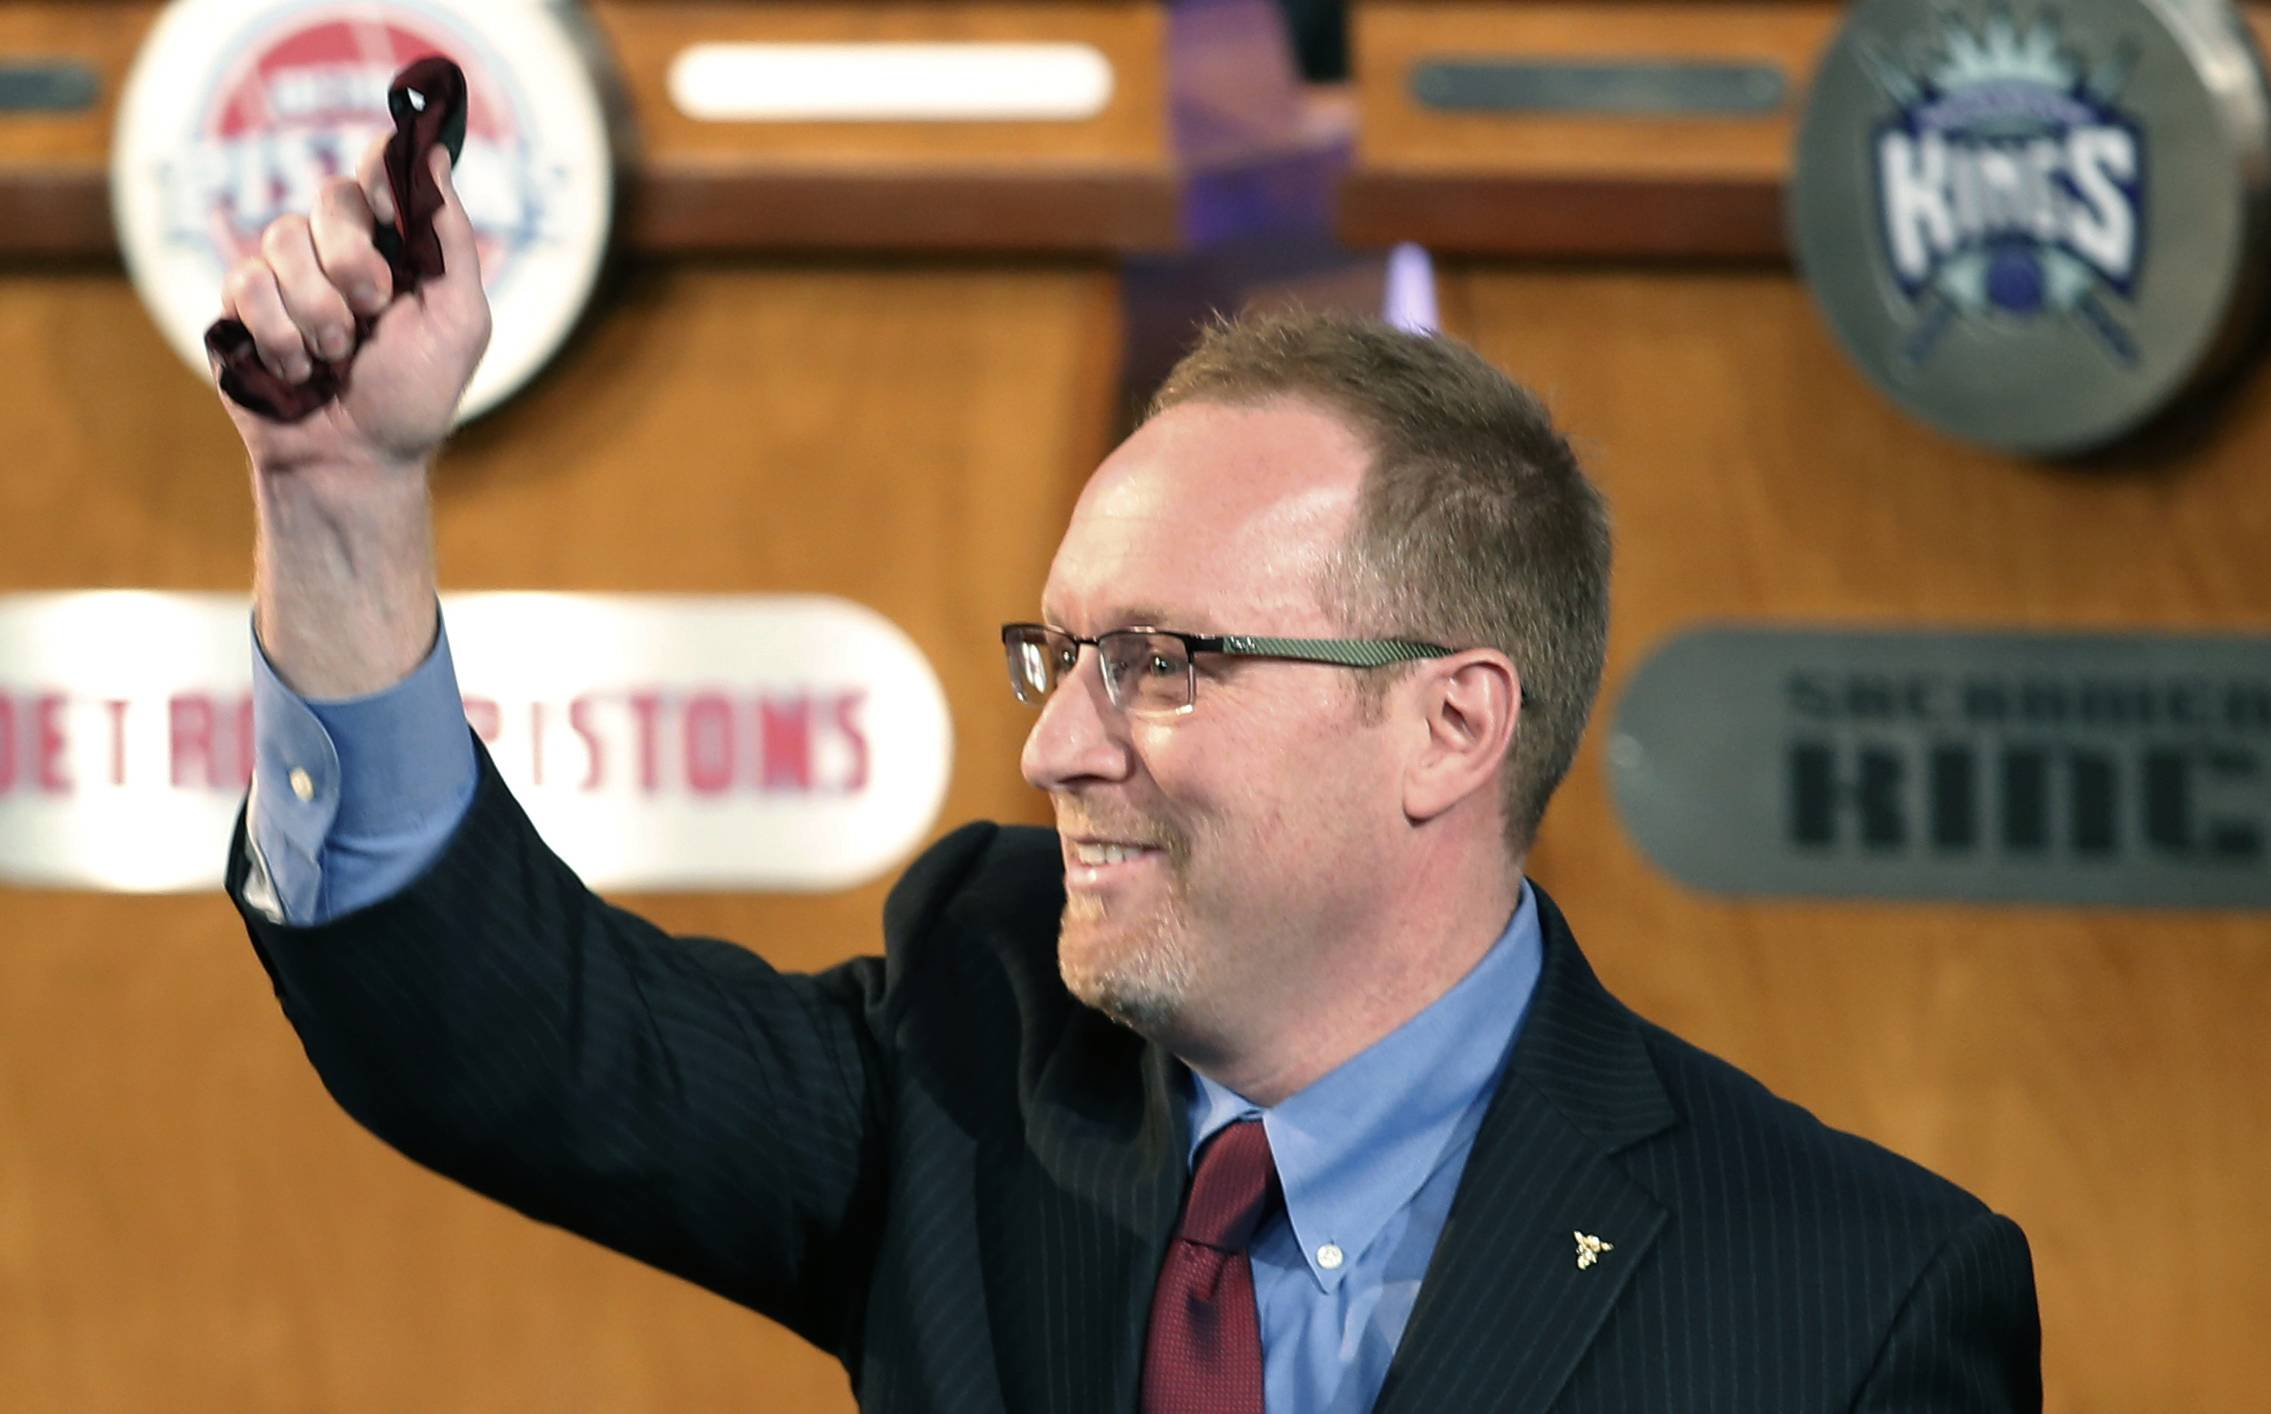 Cleveland Cavaliers general manager David Griffin holds a lucky bow tie after the Cavaliers won the first pick Tuesday in the NBA draft lottery in New York. The bowtie was worn by Nick Gilbert, son of Cavaliers owner Dan Gilbert, who represented the Cavs in the previous draft lottery, when they also won the first pick. It's the third time in four years the Cavs will be atop the draft after moving up from the ninth spot.